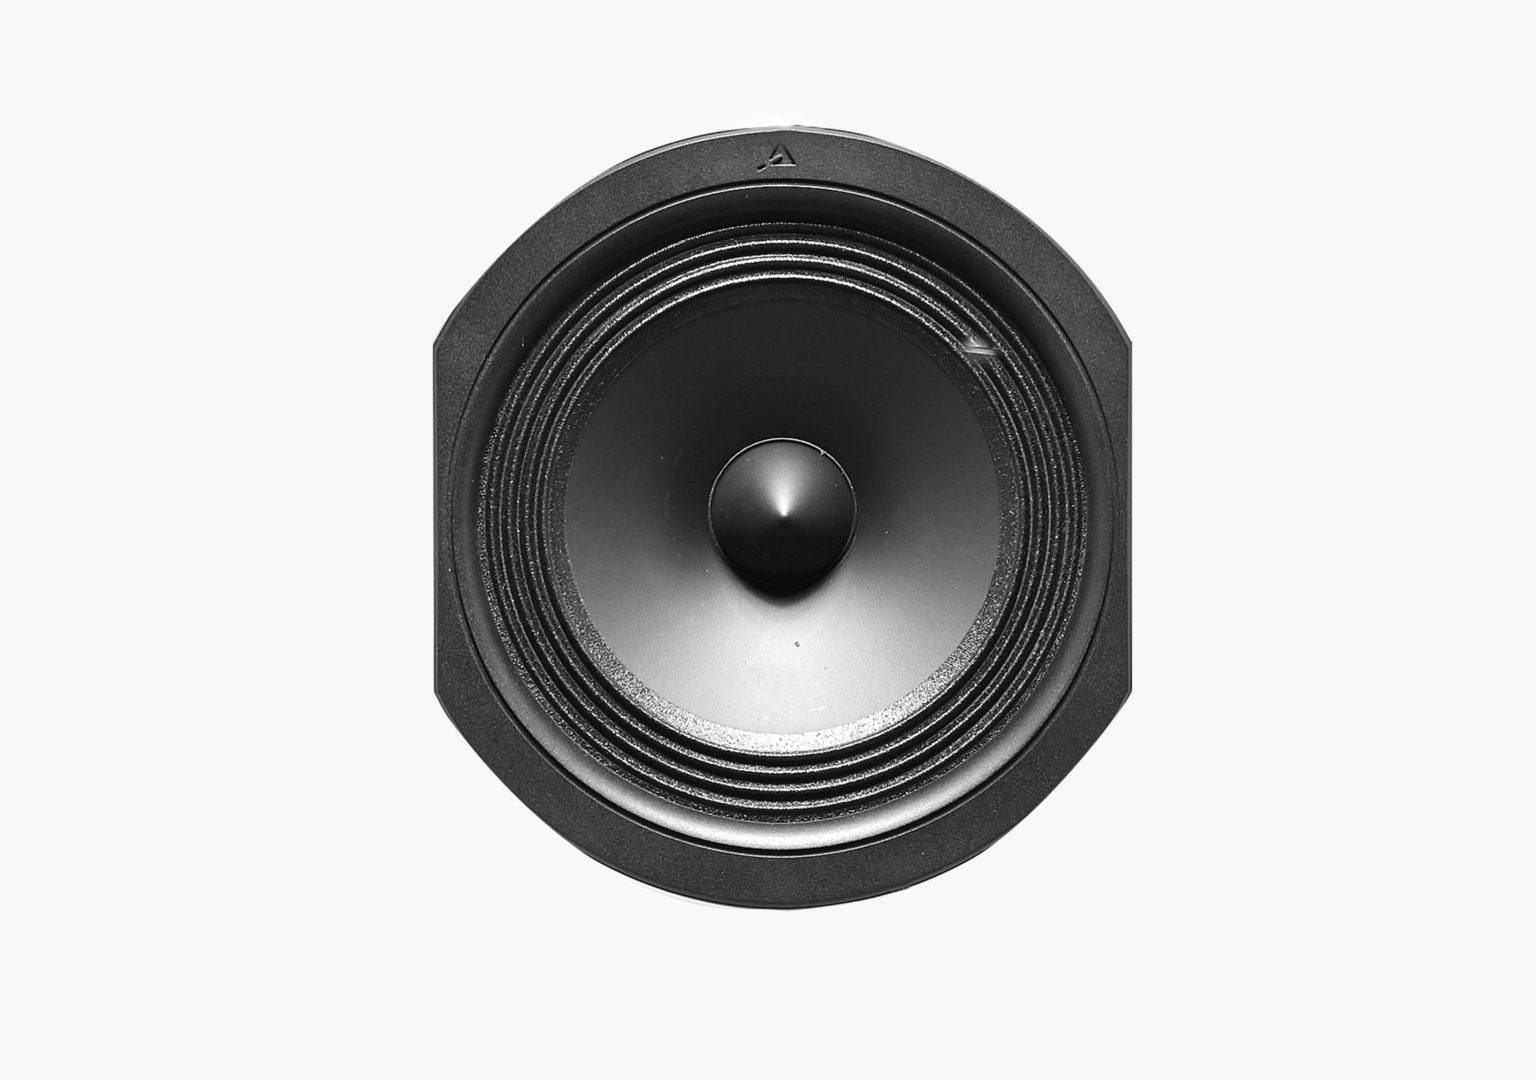 Haut-parleur medium enceinte hifi triangle plaisir packshot techno